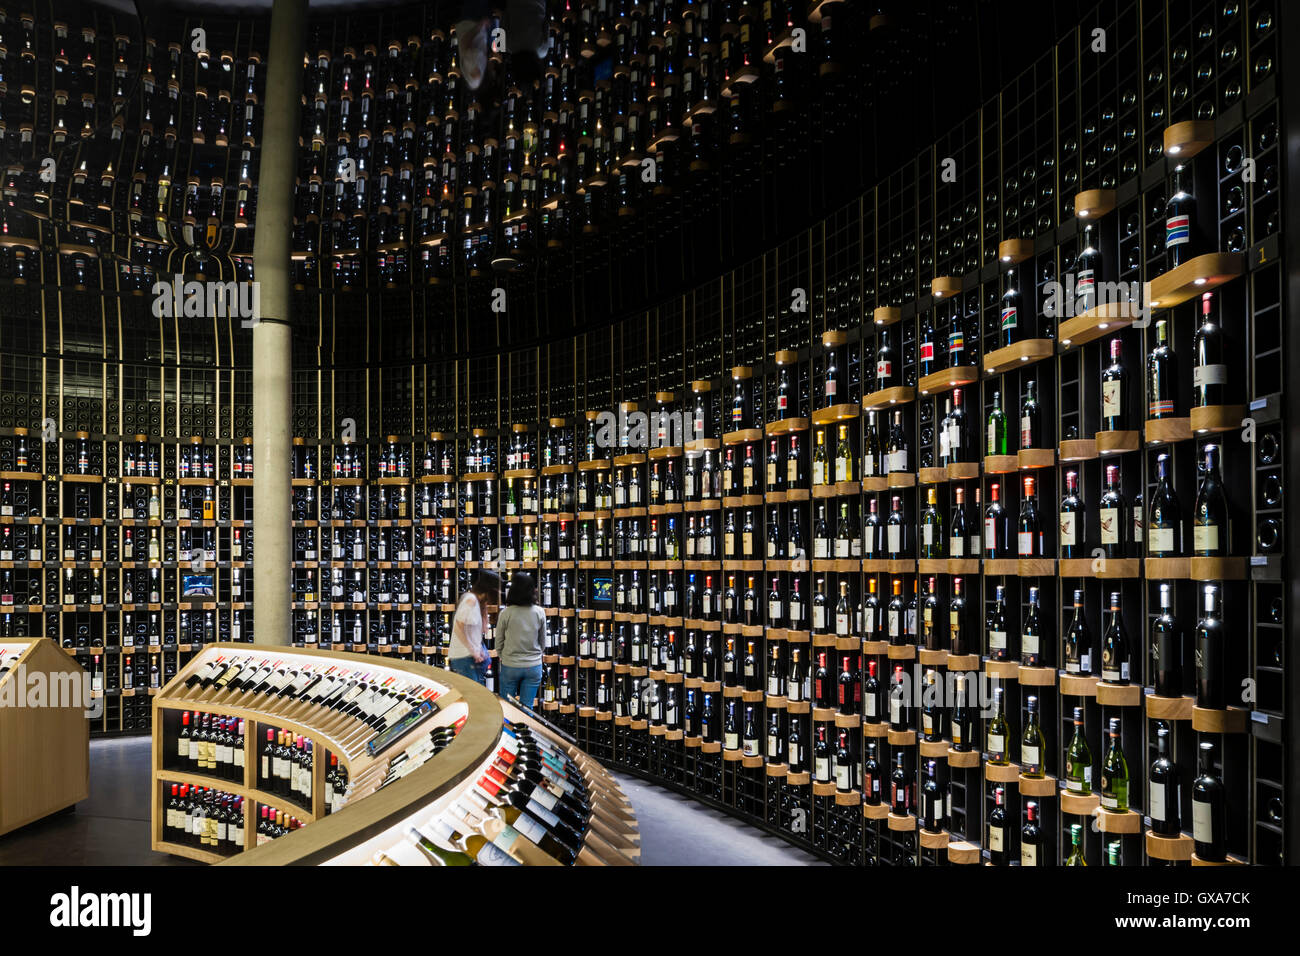 Latitude 20 global wine cellar with more than 14,000 bottles, 800 ...